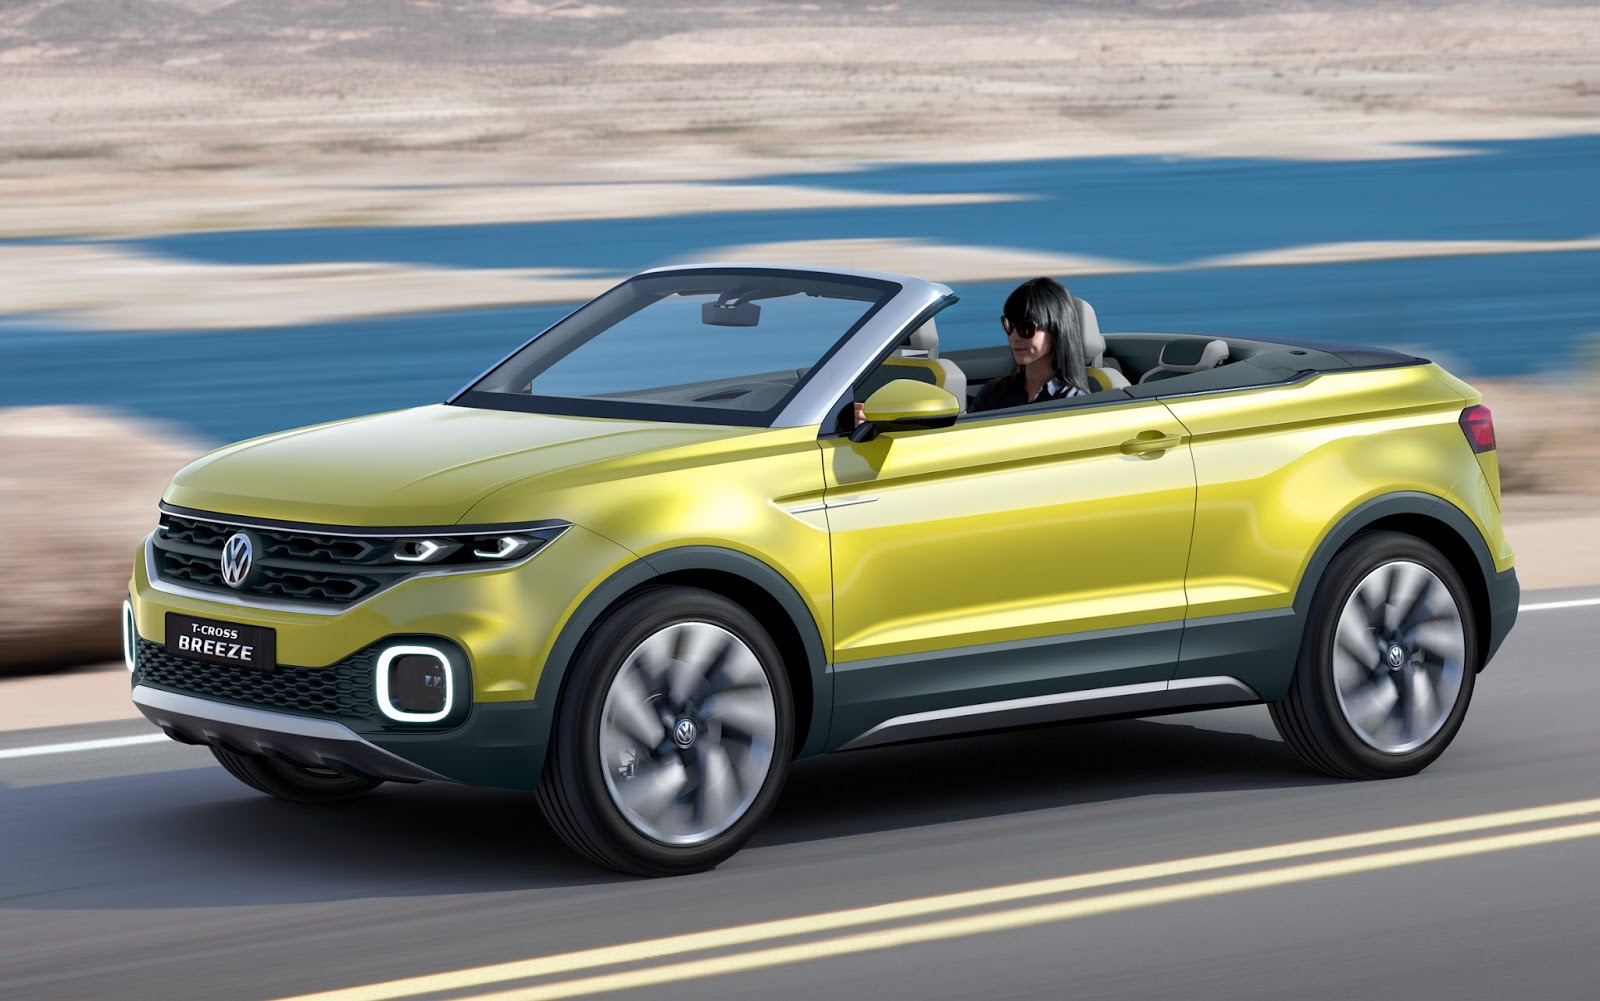 vw t cross breeze concept is a topless juke sized crossover carscoops. Black Bedroom Furniture Sets. Home Design Ideas